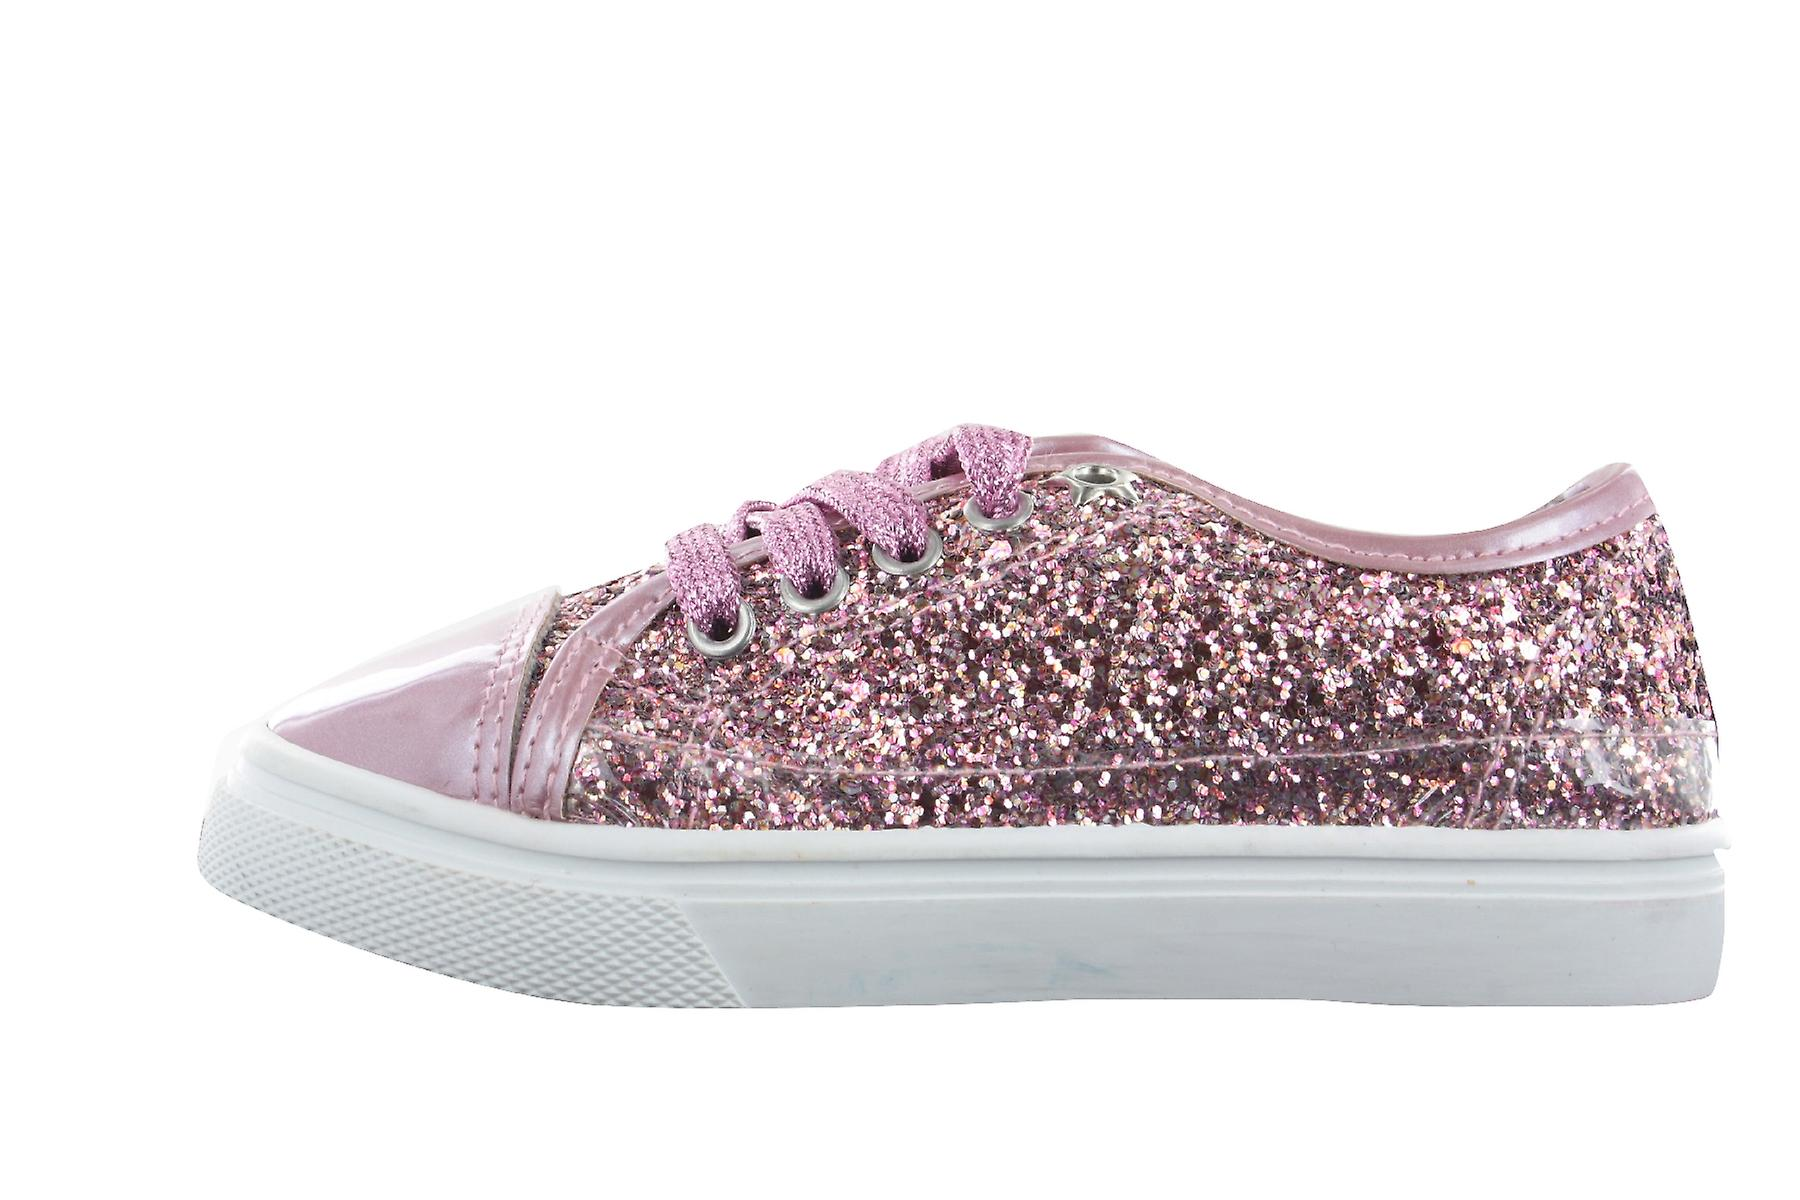 Girls Buckle My Shoe Glitter Pink Low Top Fashion Trainer Shoe Various Sizes